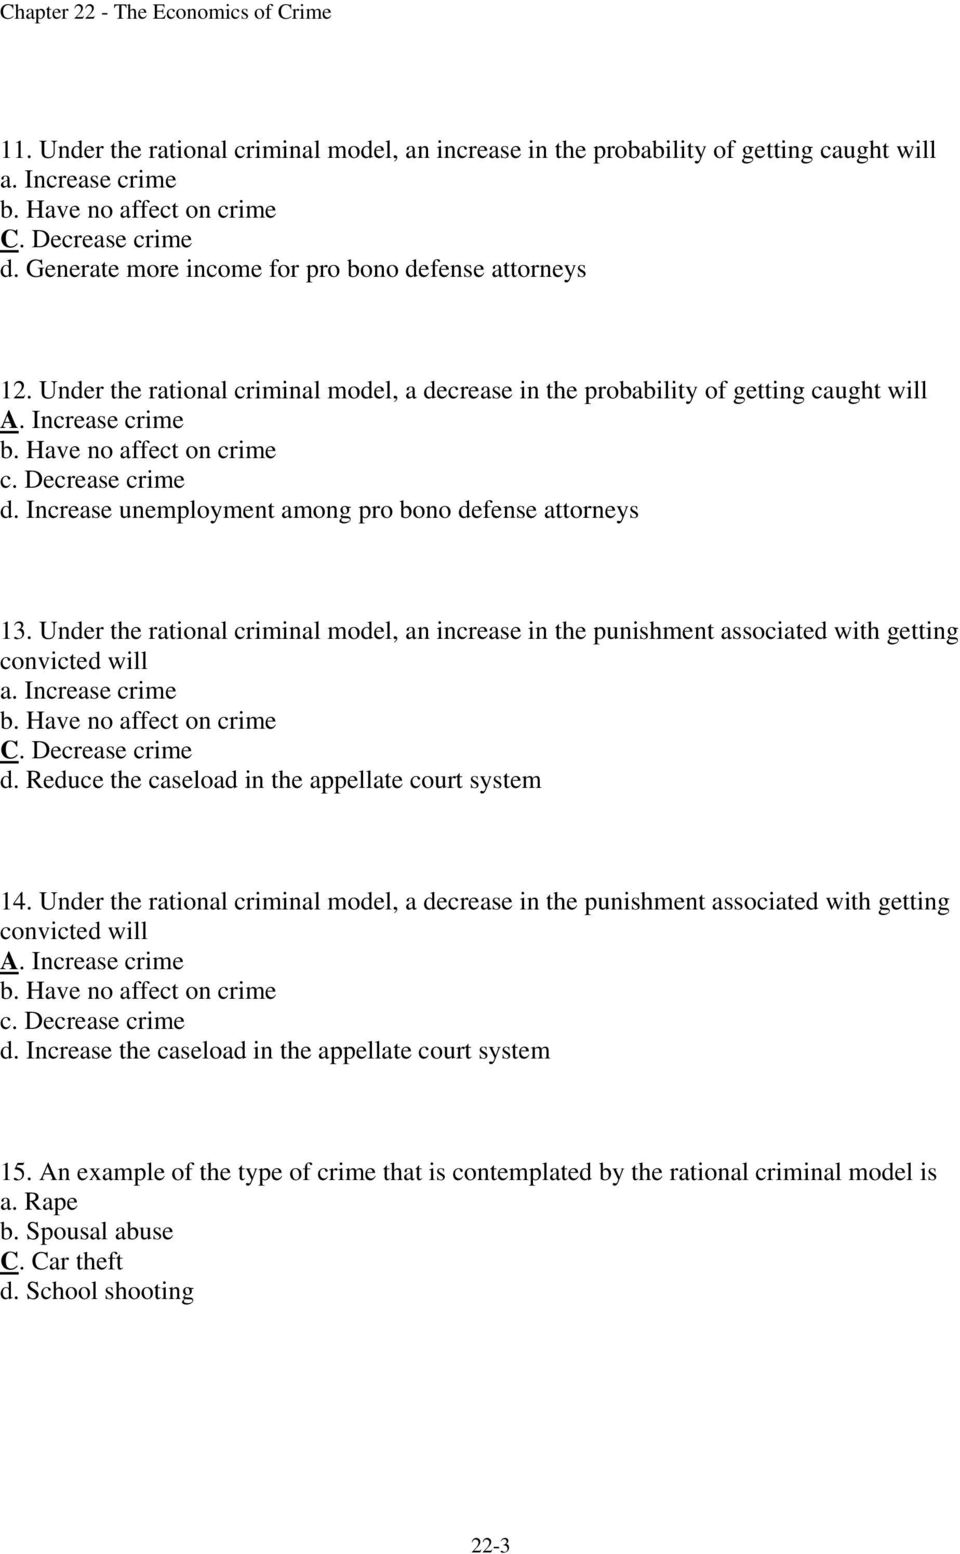 Chapter 22 The Economics of Crime - PDF